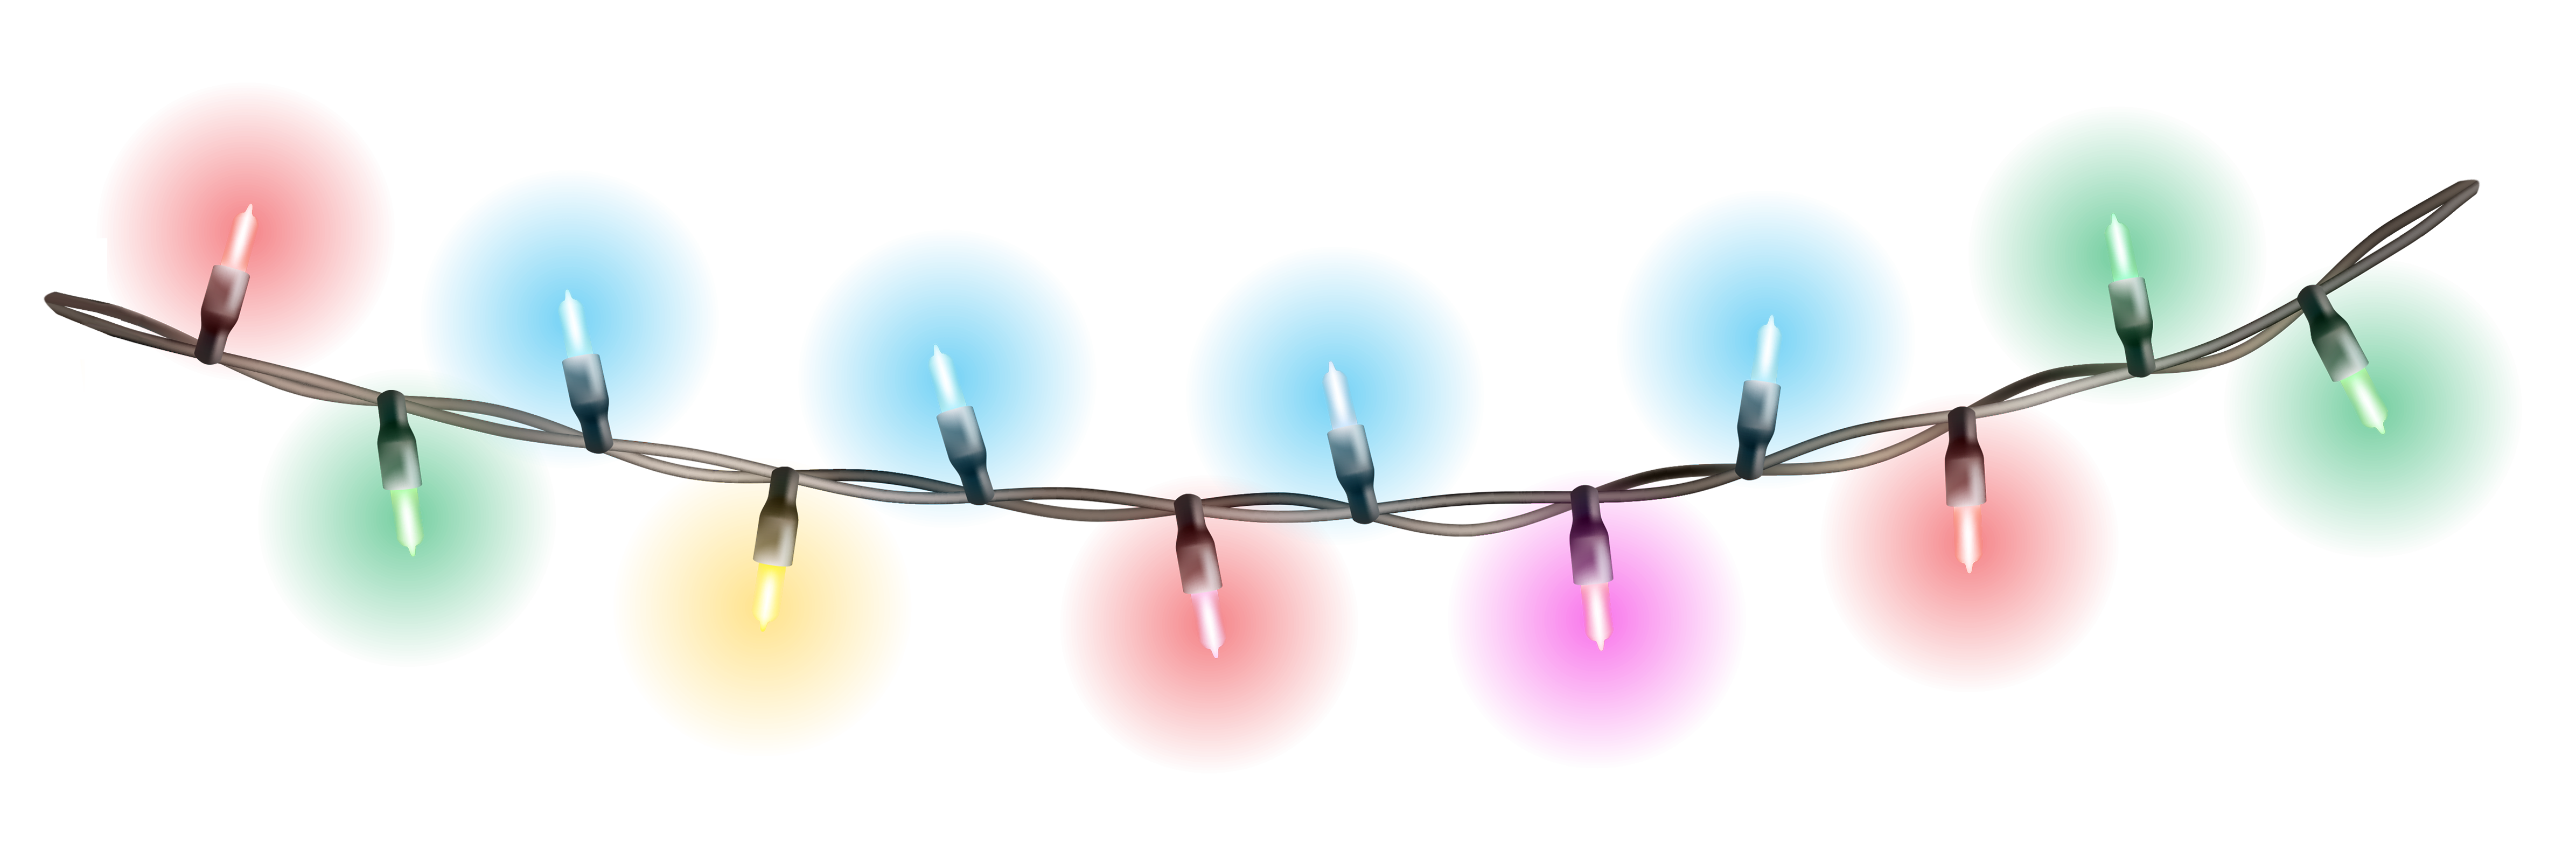 Christmas lights .png. Decoration png picture mart